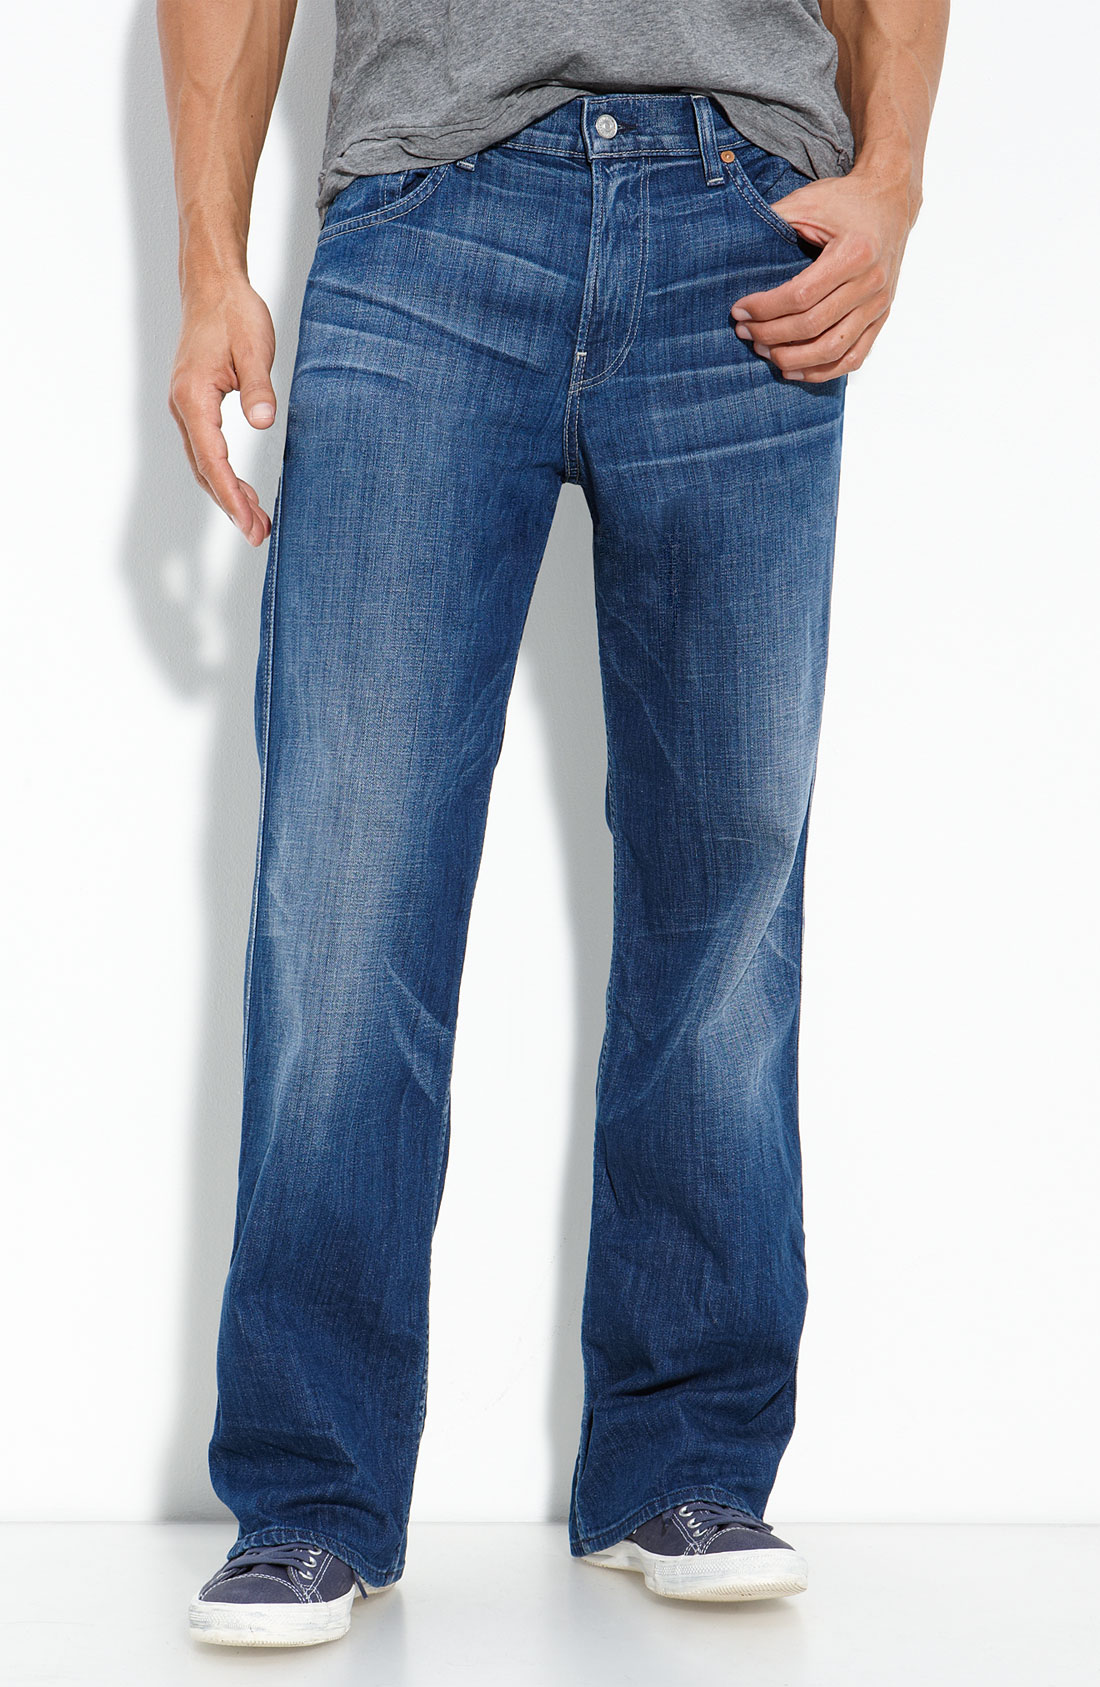 Mens Loose Bootcut Jeans